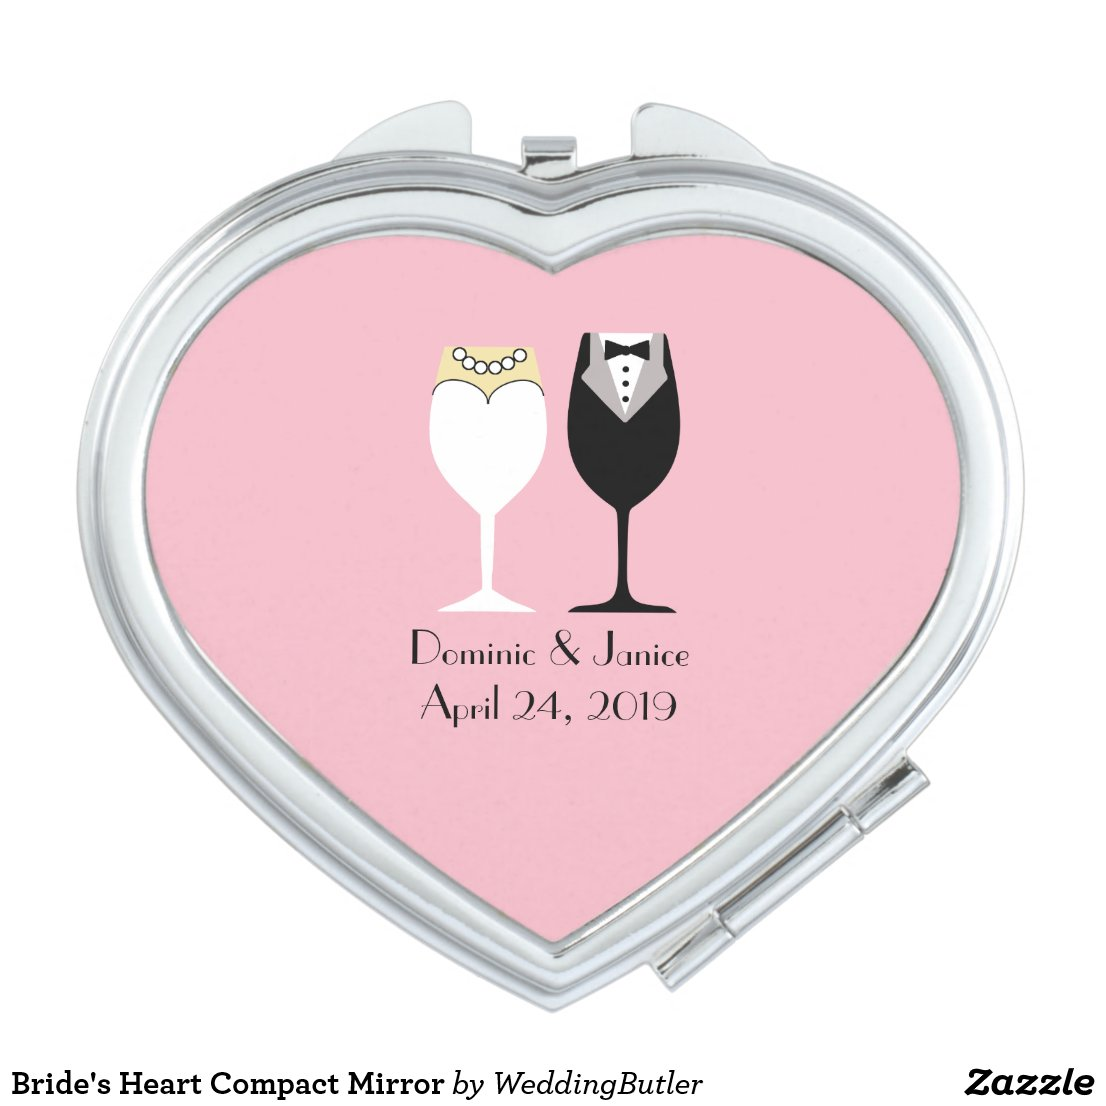 Bride's Heart Compact Mirror